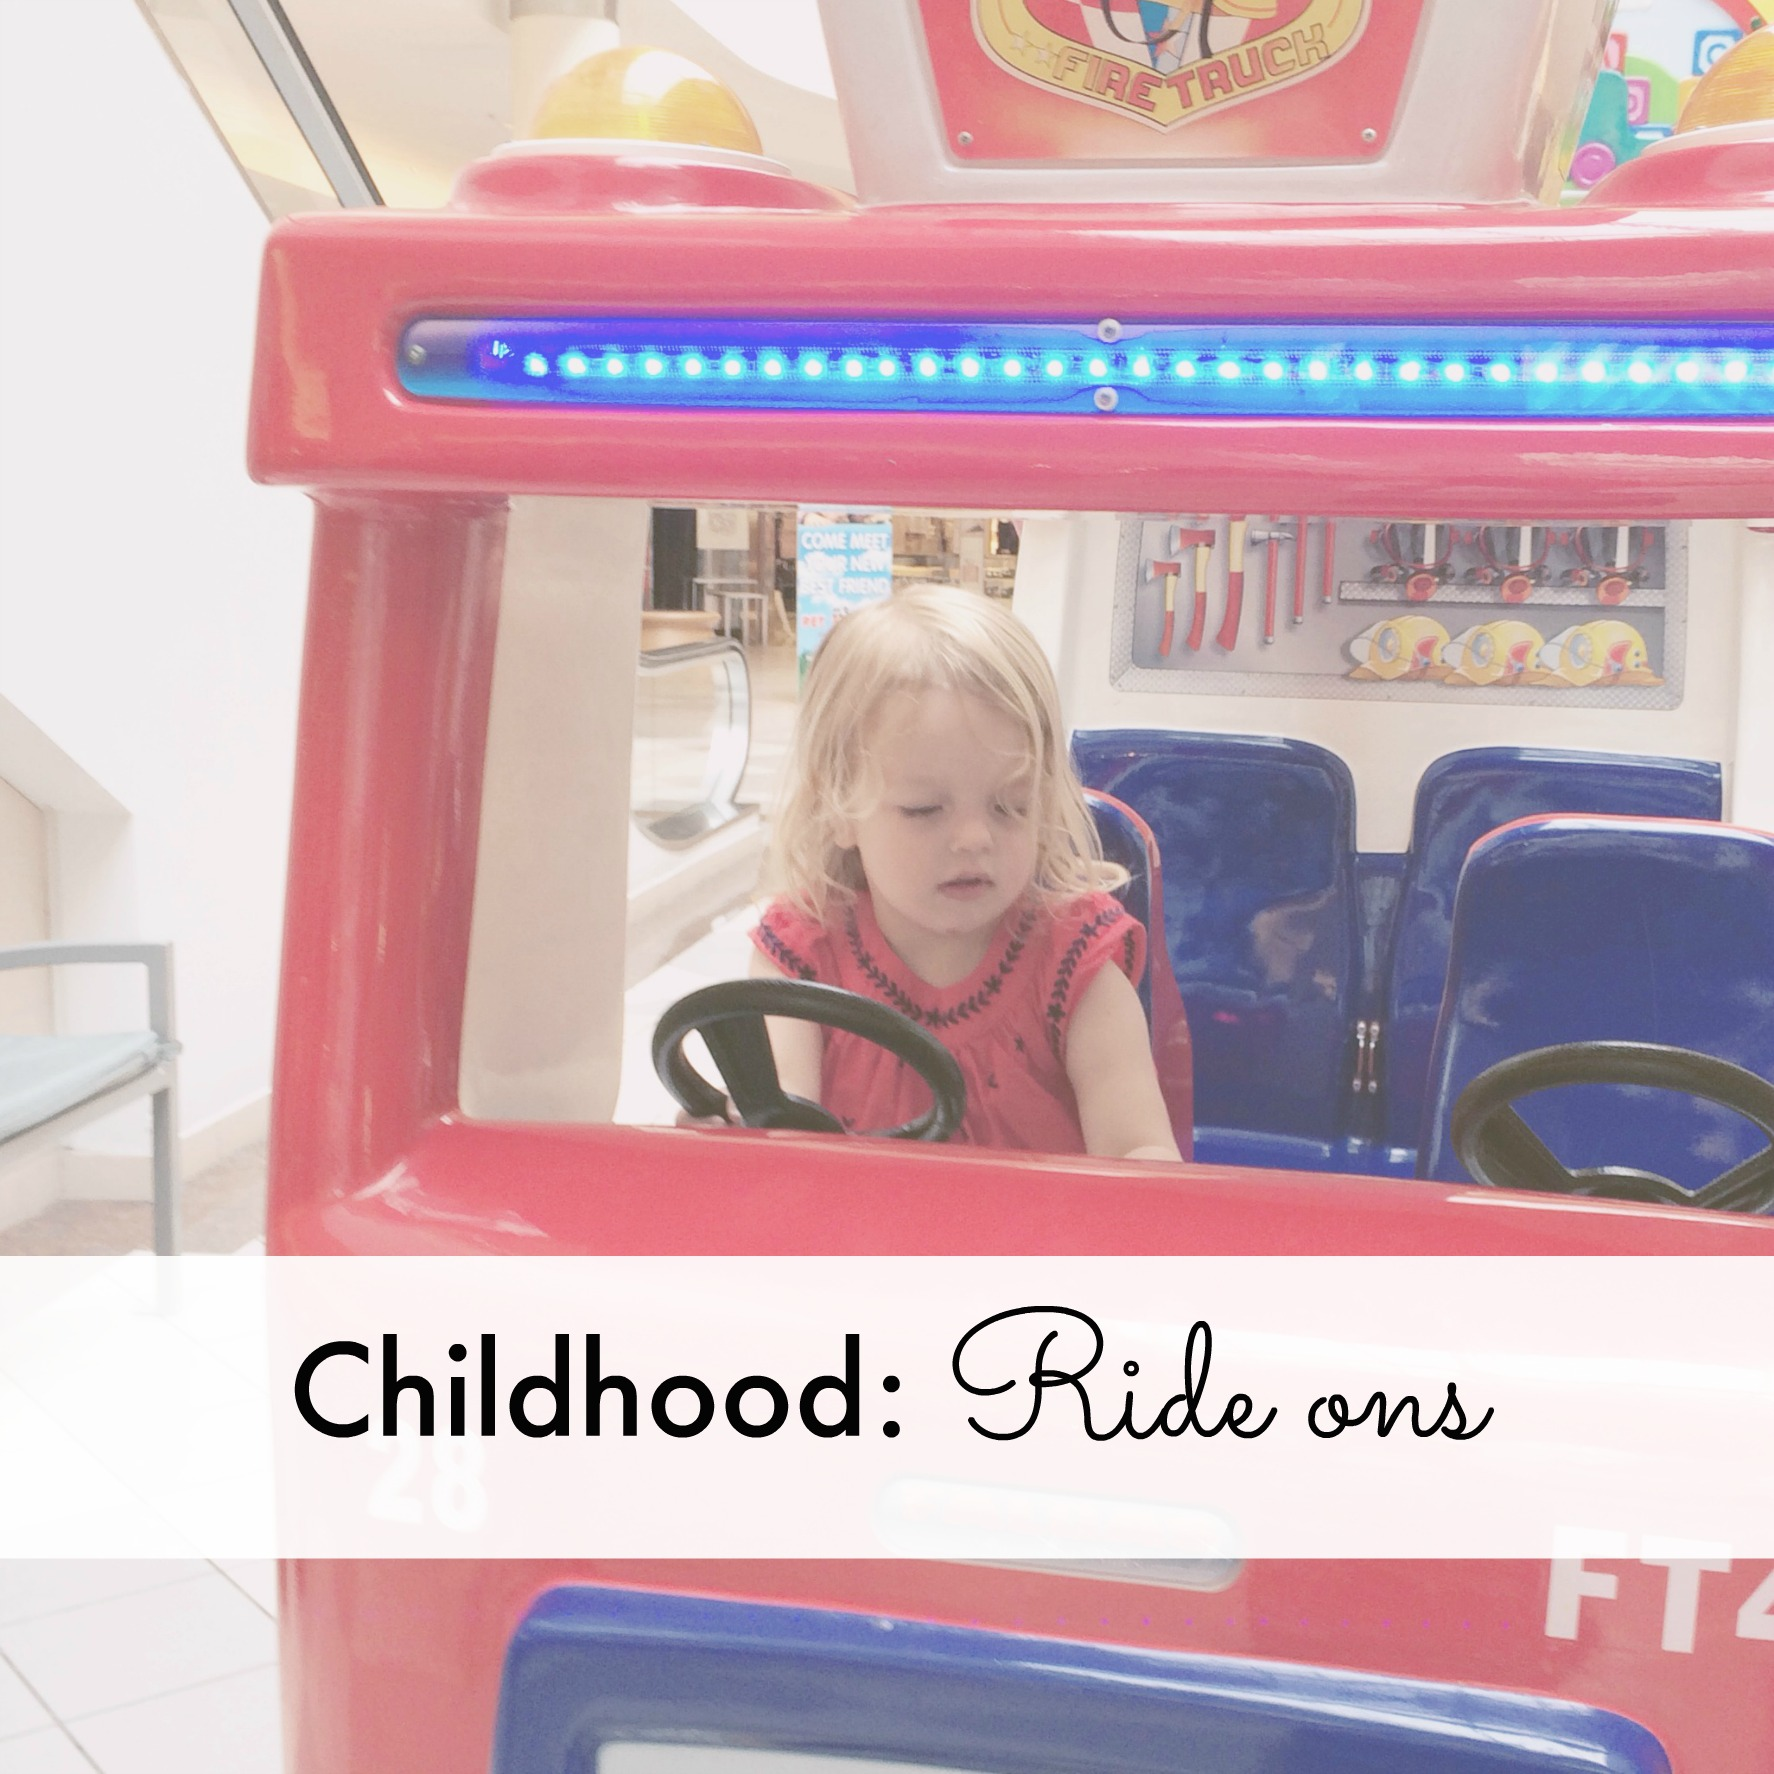 Childhood: ride ons